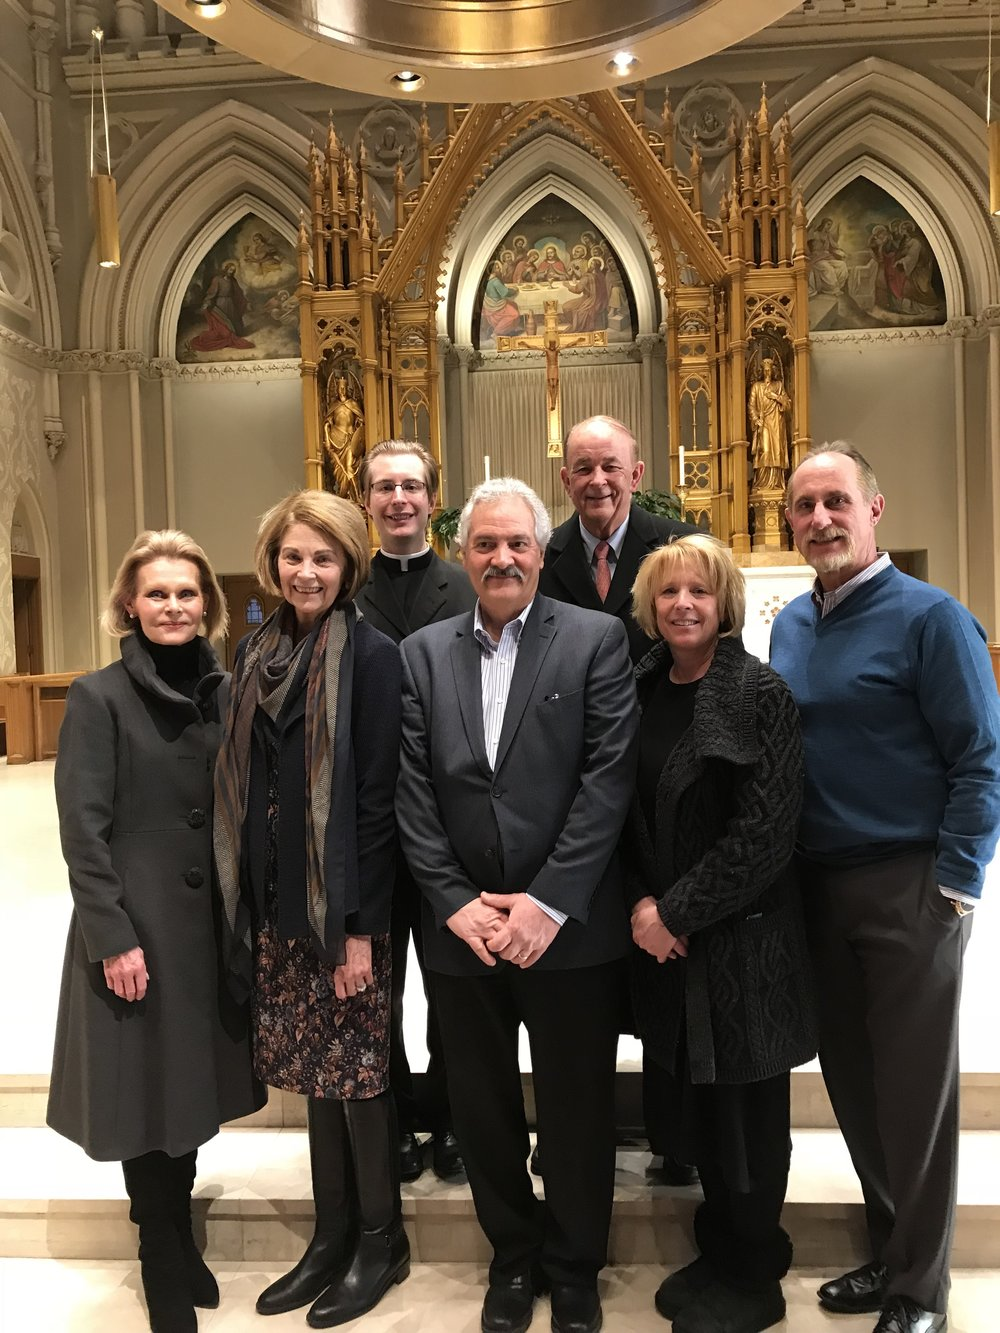 The Rite of Election at the Cathedral, Sunday, February 18.  Left to Right: RCIA Team Members Carol Jones, Mary Anne Weaver, Fr. Barrow, Candidate Al Behbehani, RCIA Team Member Don Jones, Candidate Sue Healey and her husband, Mike Healey.